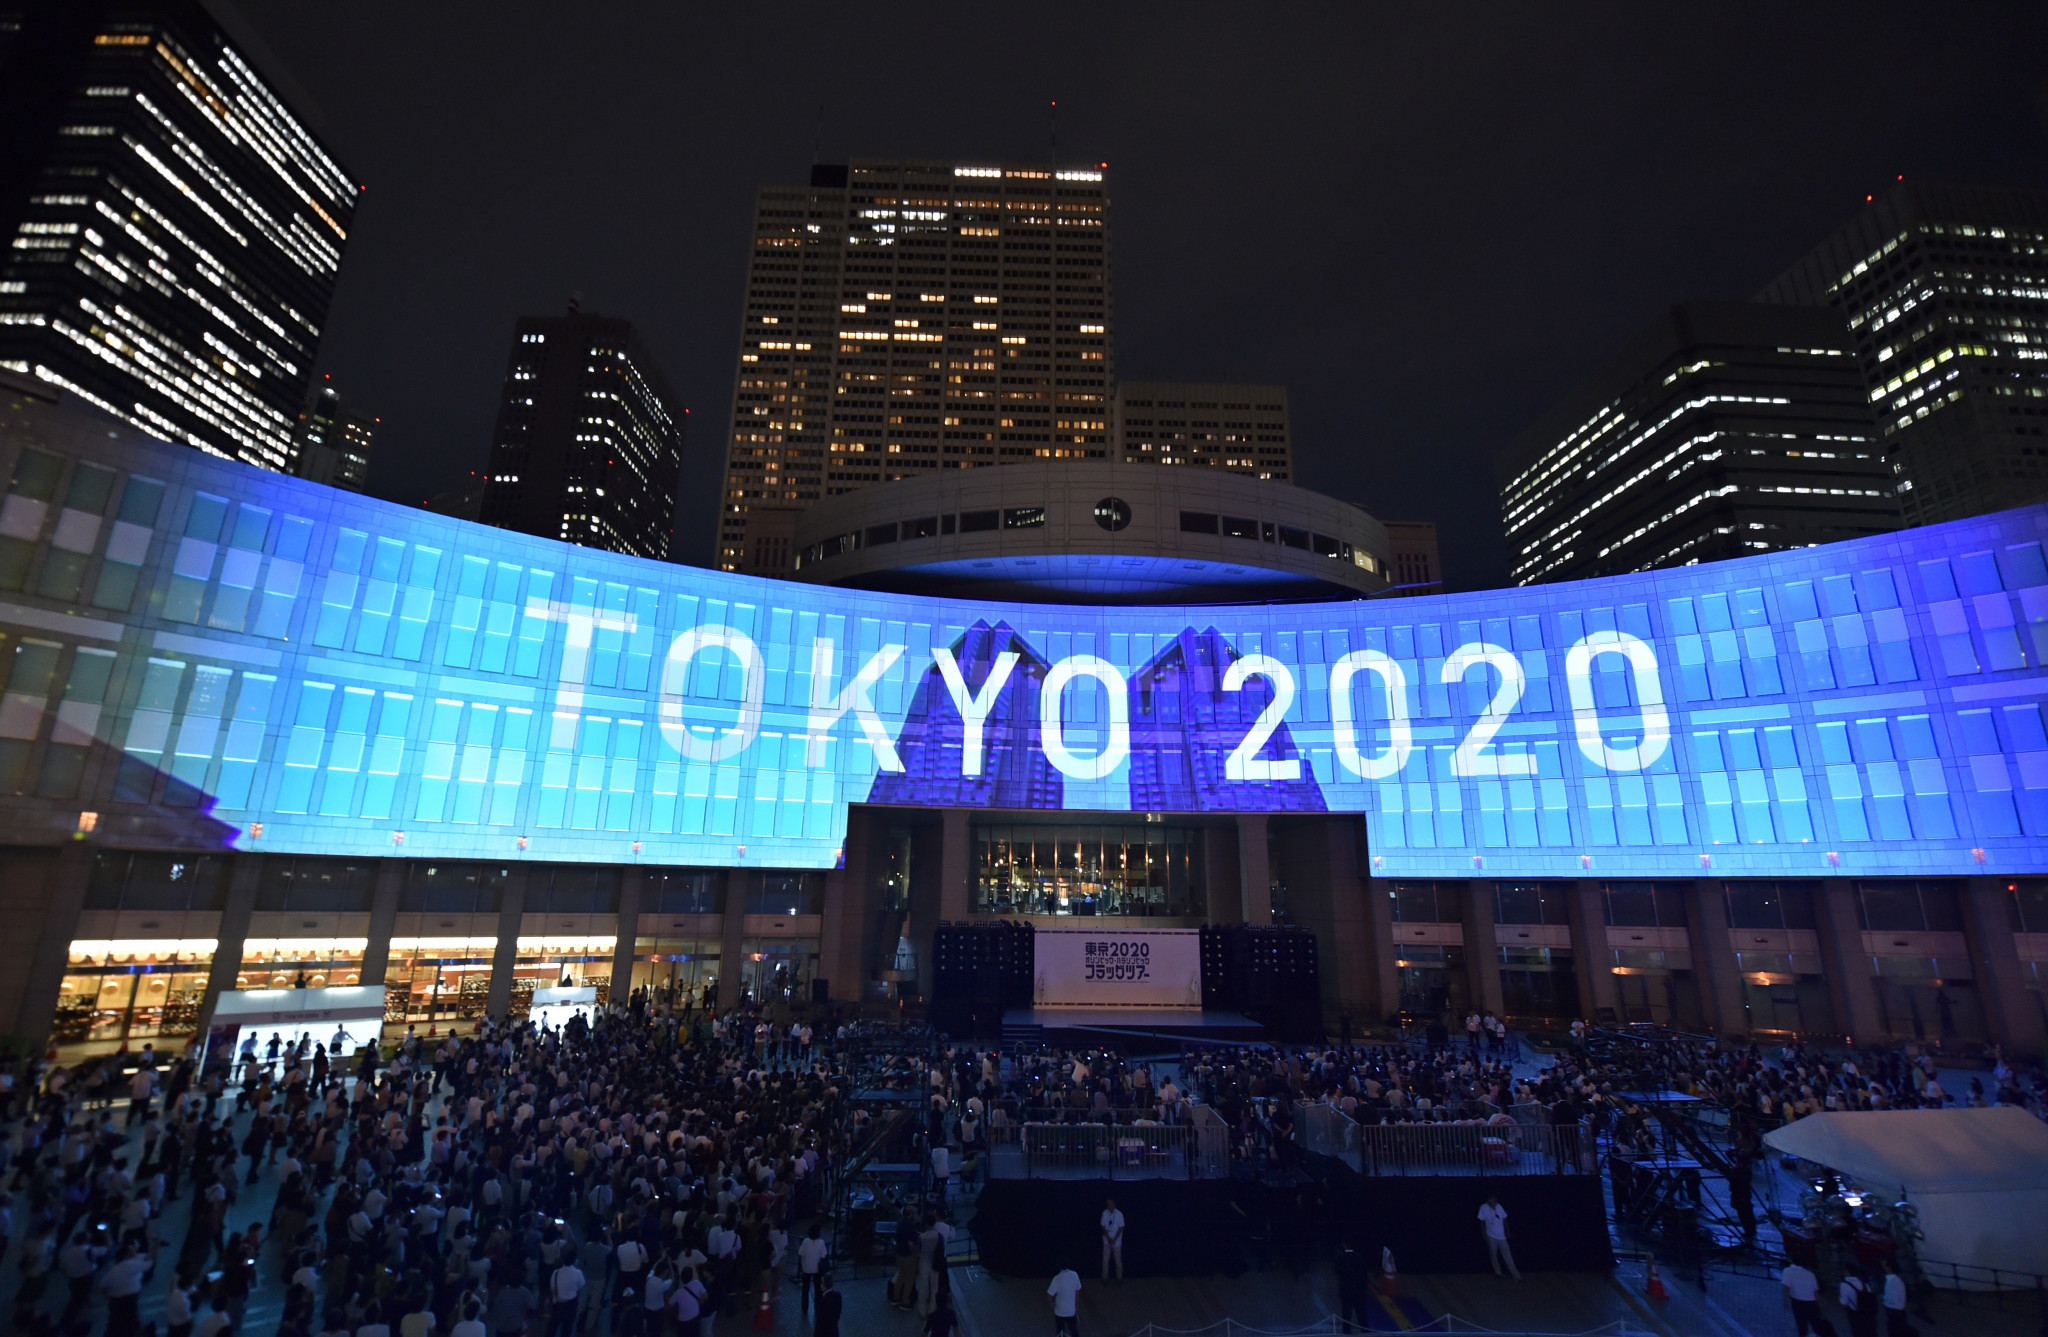 I remain as confident as ever that the 2018 Pyeongchang Games and 2020 Tokyo Games can raise in excess of $10 billion ©Getty Images